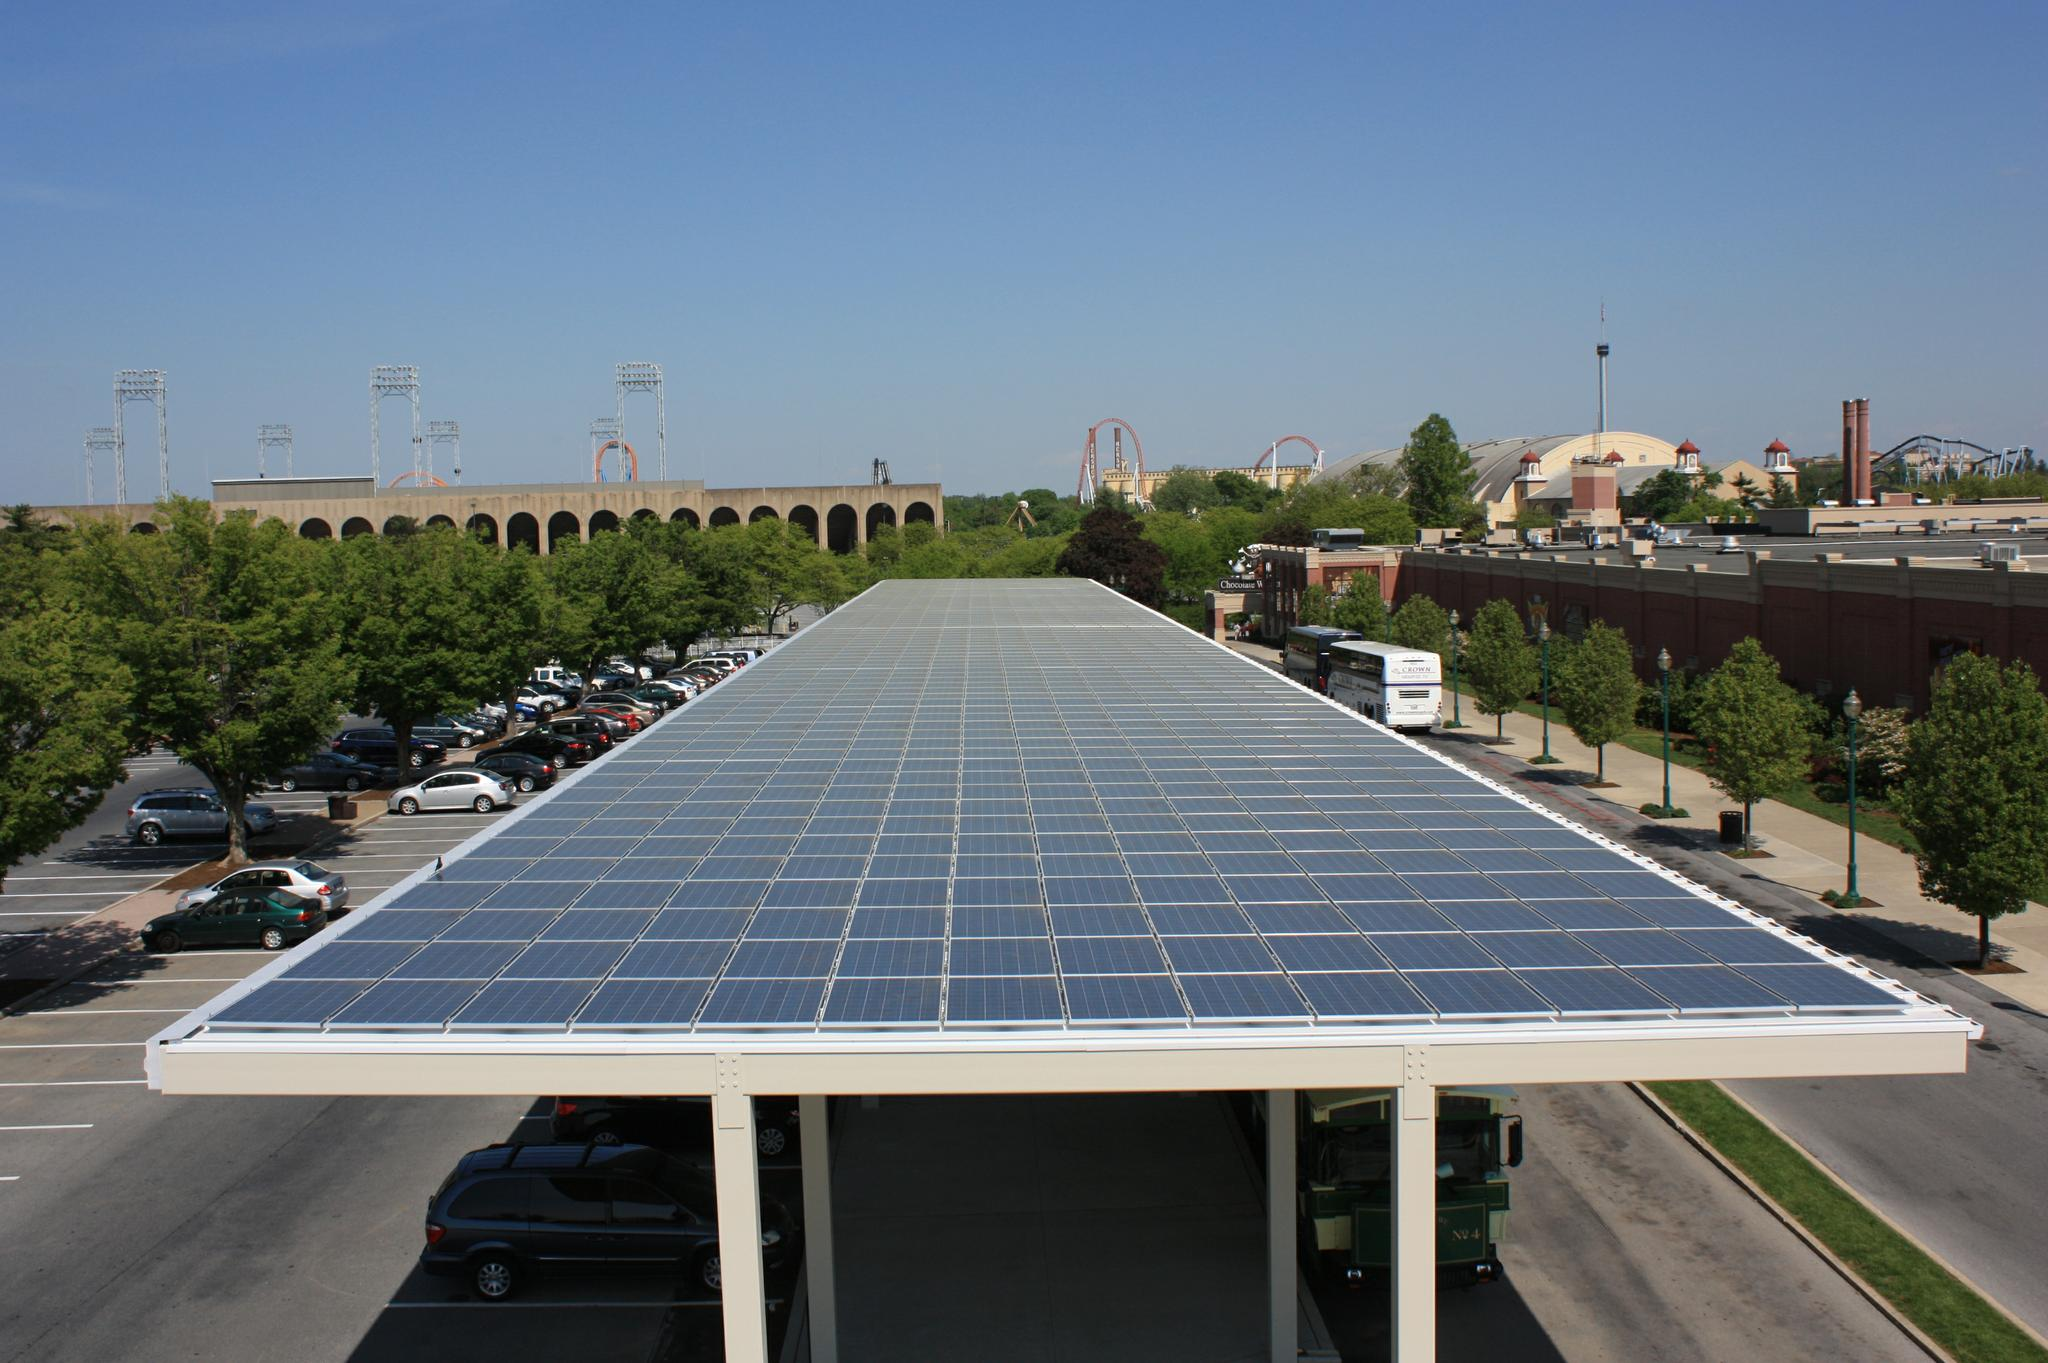 Hershey Chocolate World Solar Canopy Energysage